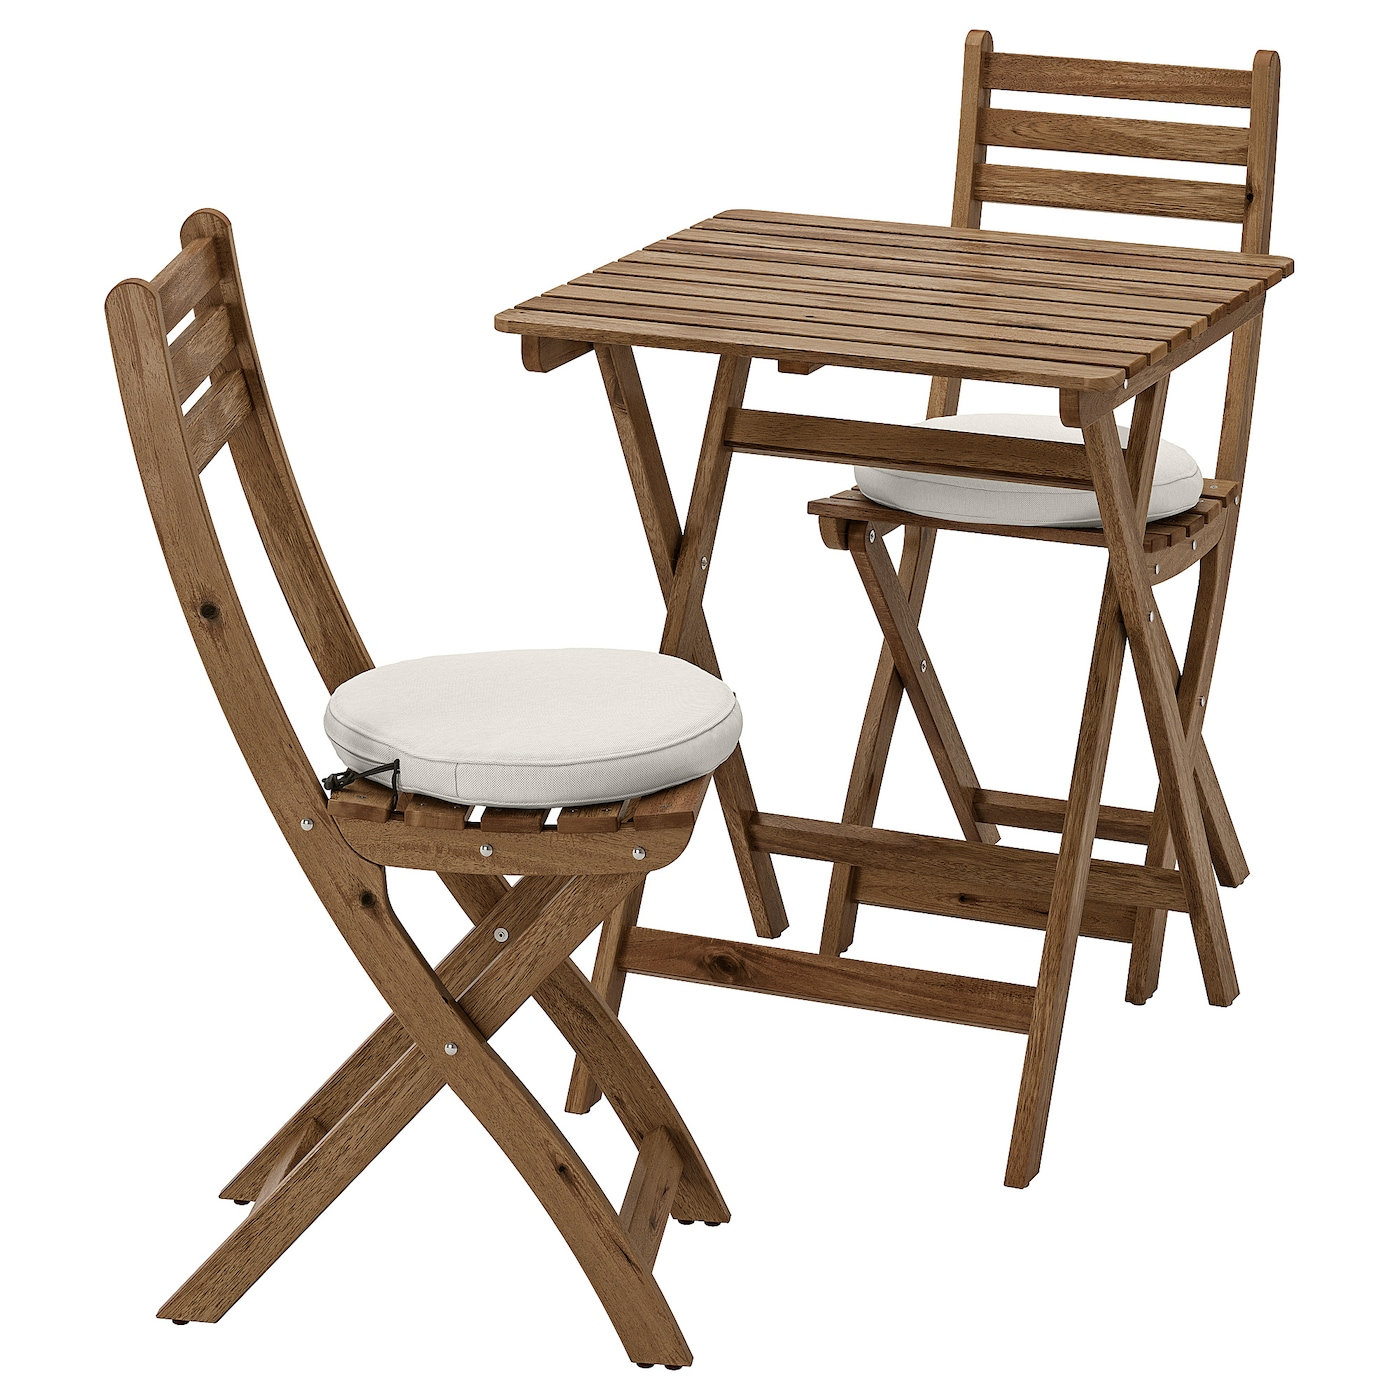 Askholmen Table And 2 Folding Chairs Outdoor Grey Brown Stained Froson Duvholmen Beige Ikea